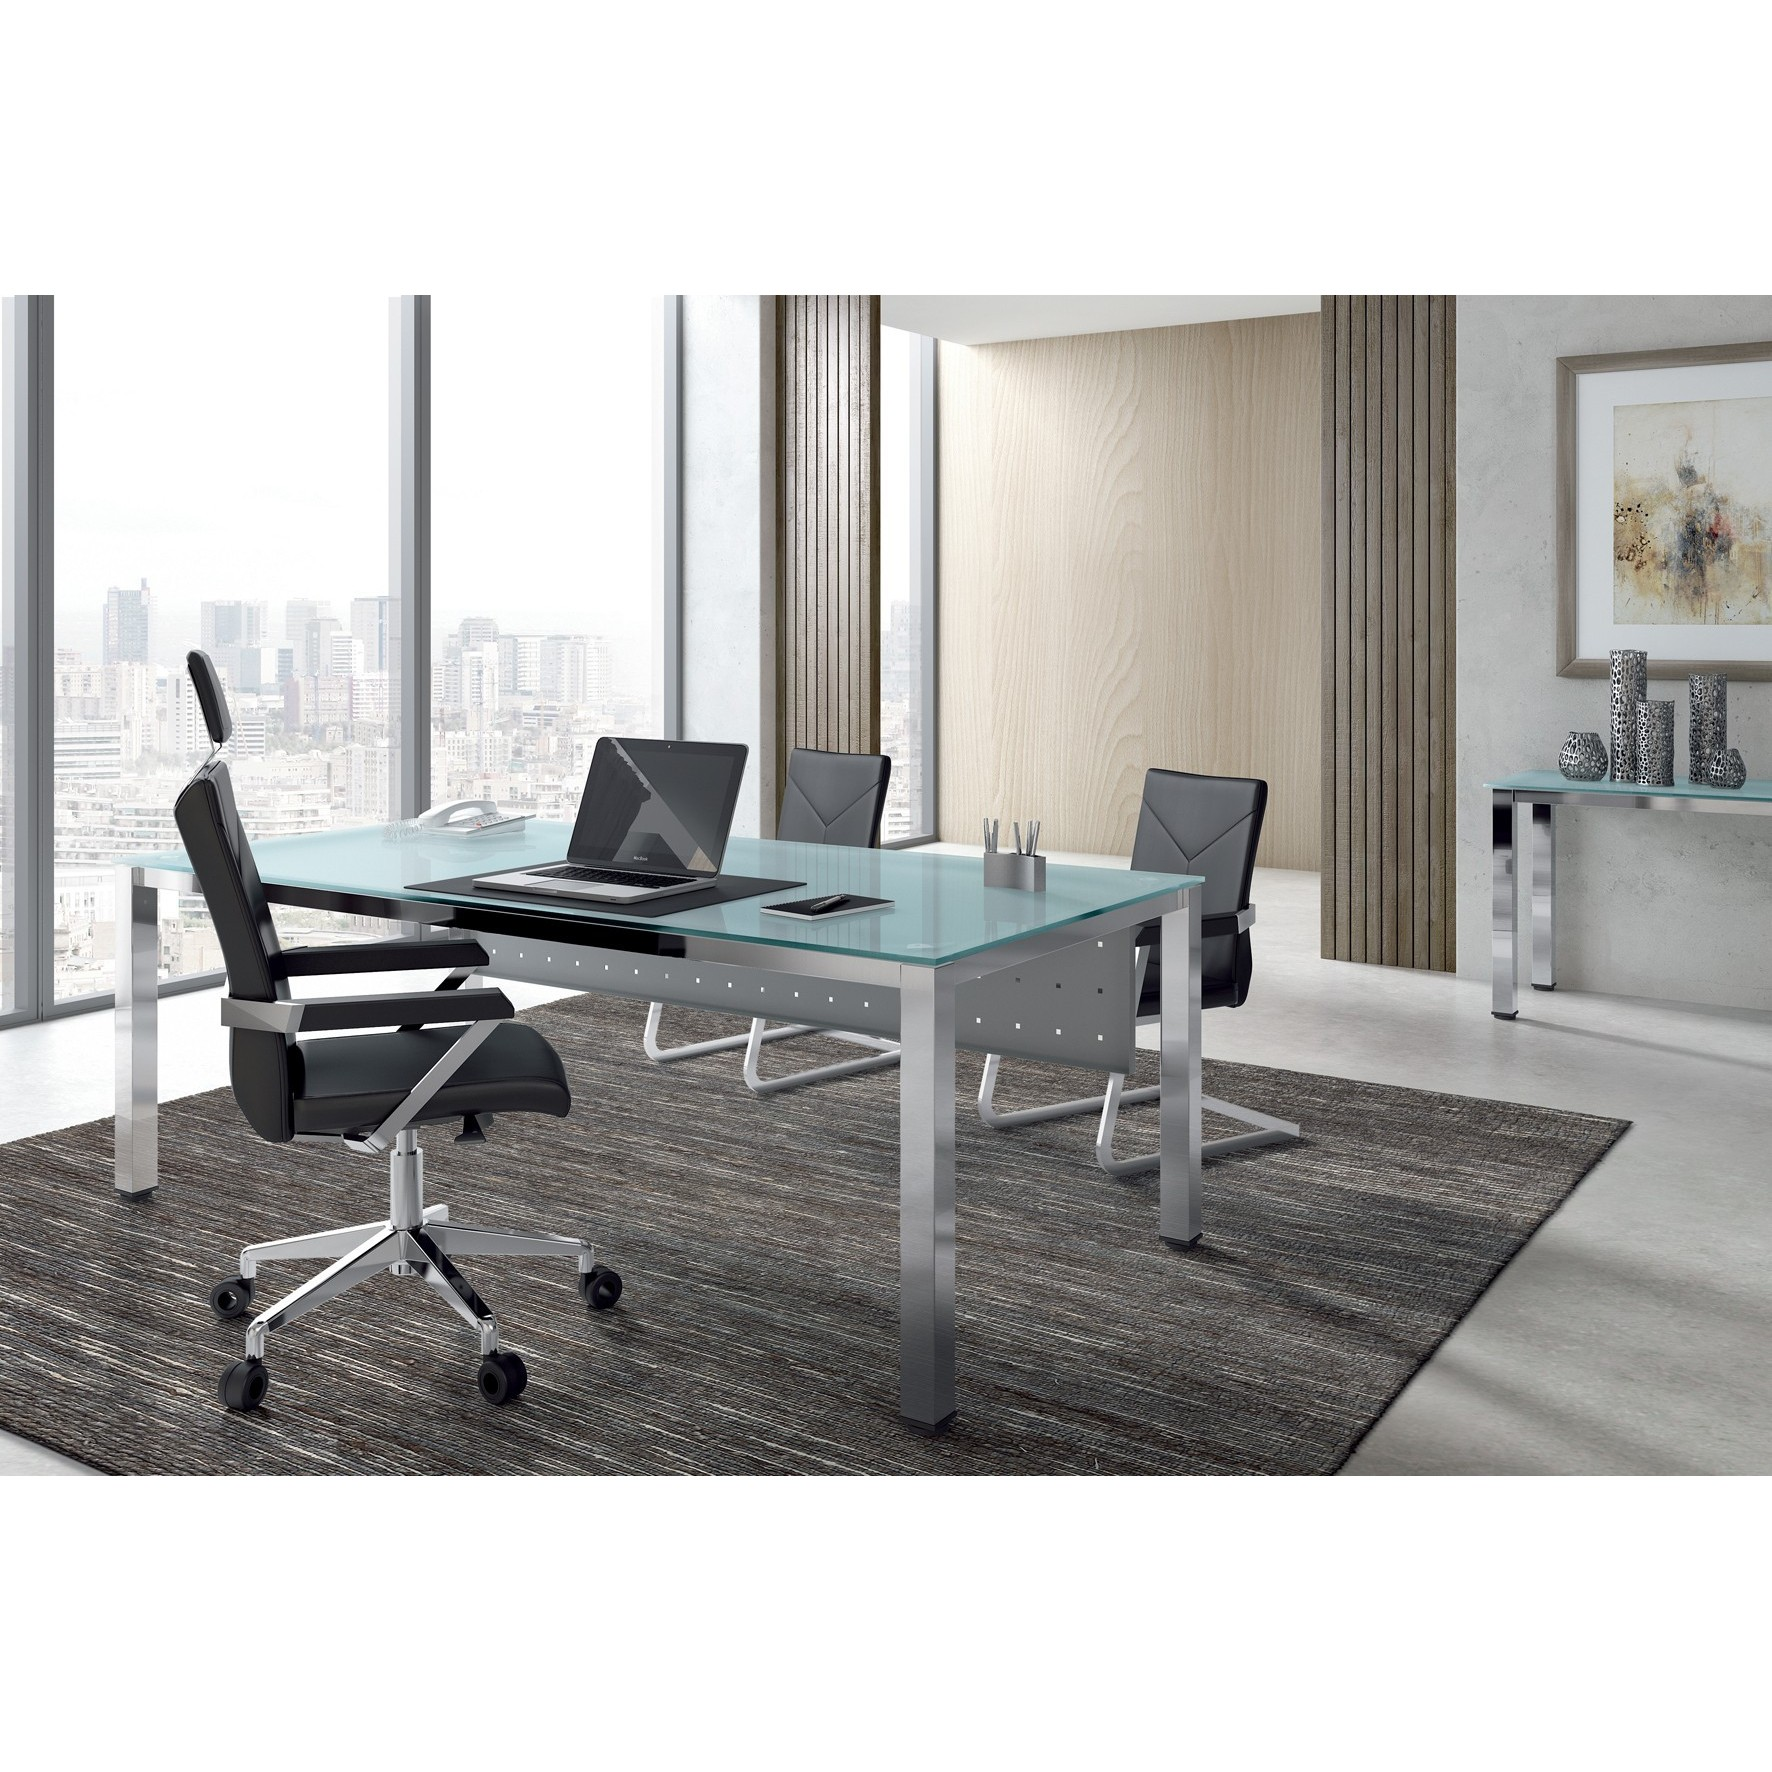 TABLE OFFICE 'S EXECUTIVE SERIES 200X100 WHITE/CRYSTAL